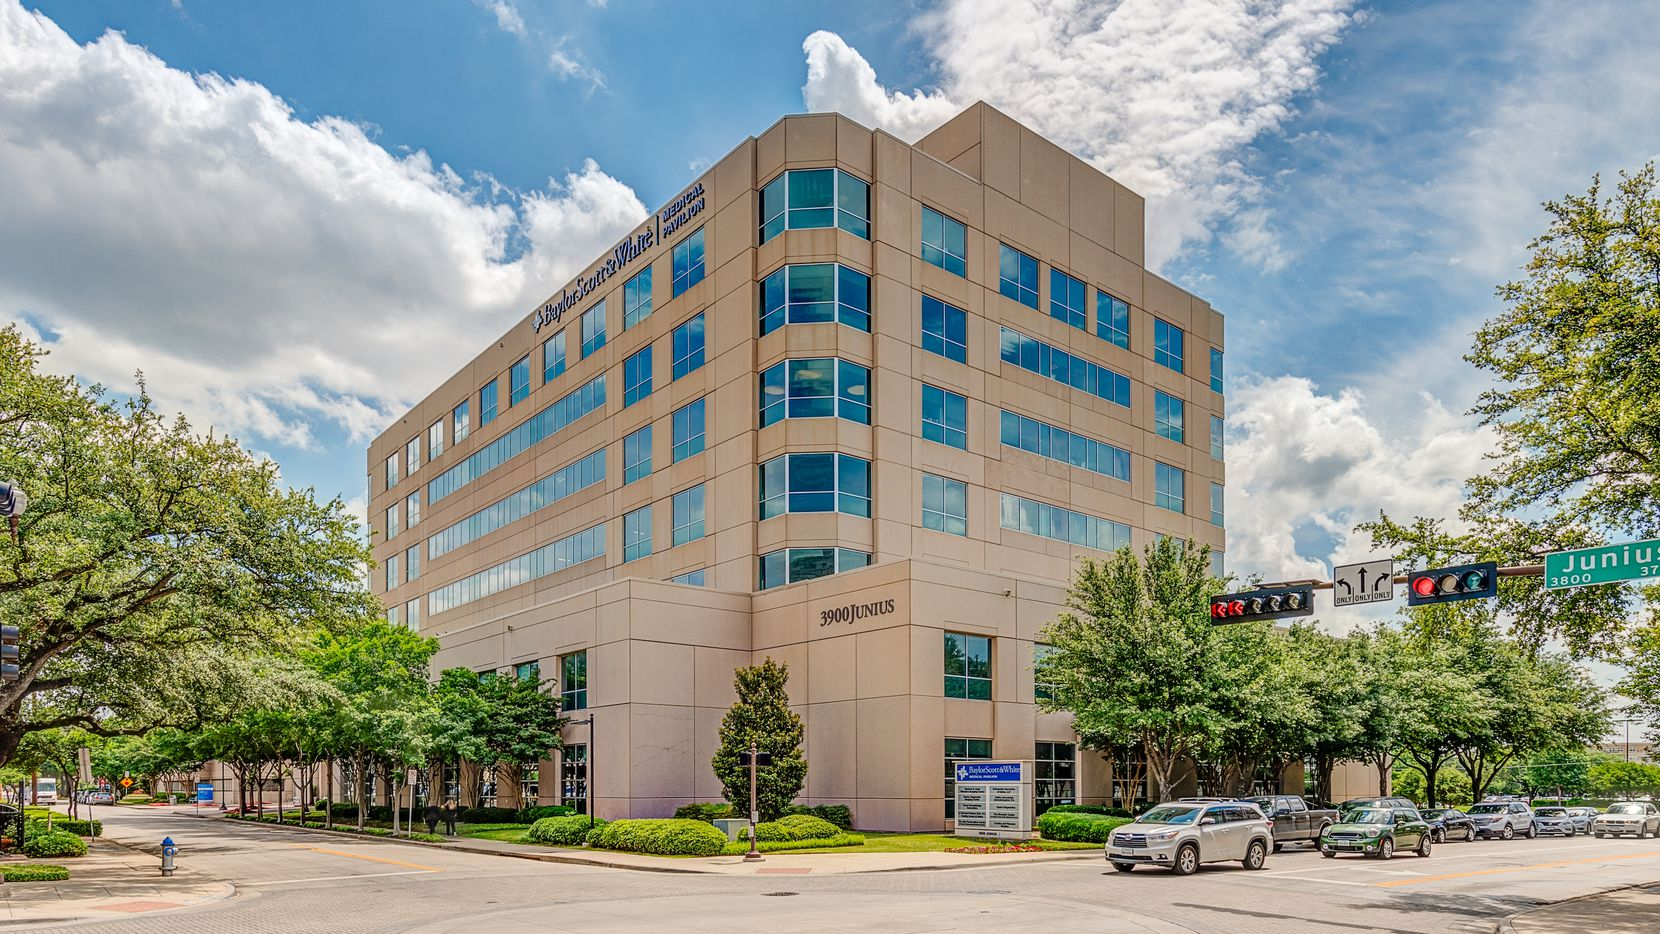 Prism Health North Texas is moving its head offices to a building on Junius Street on Baylor's campus.